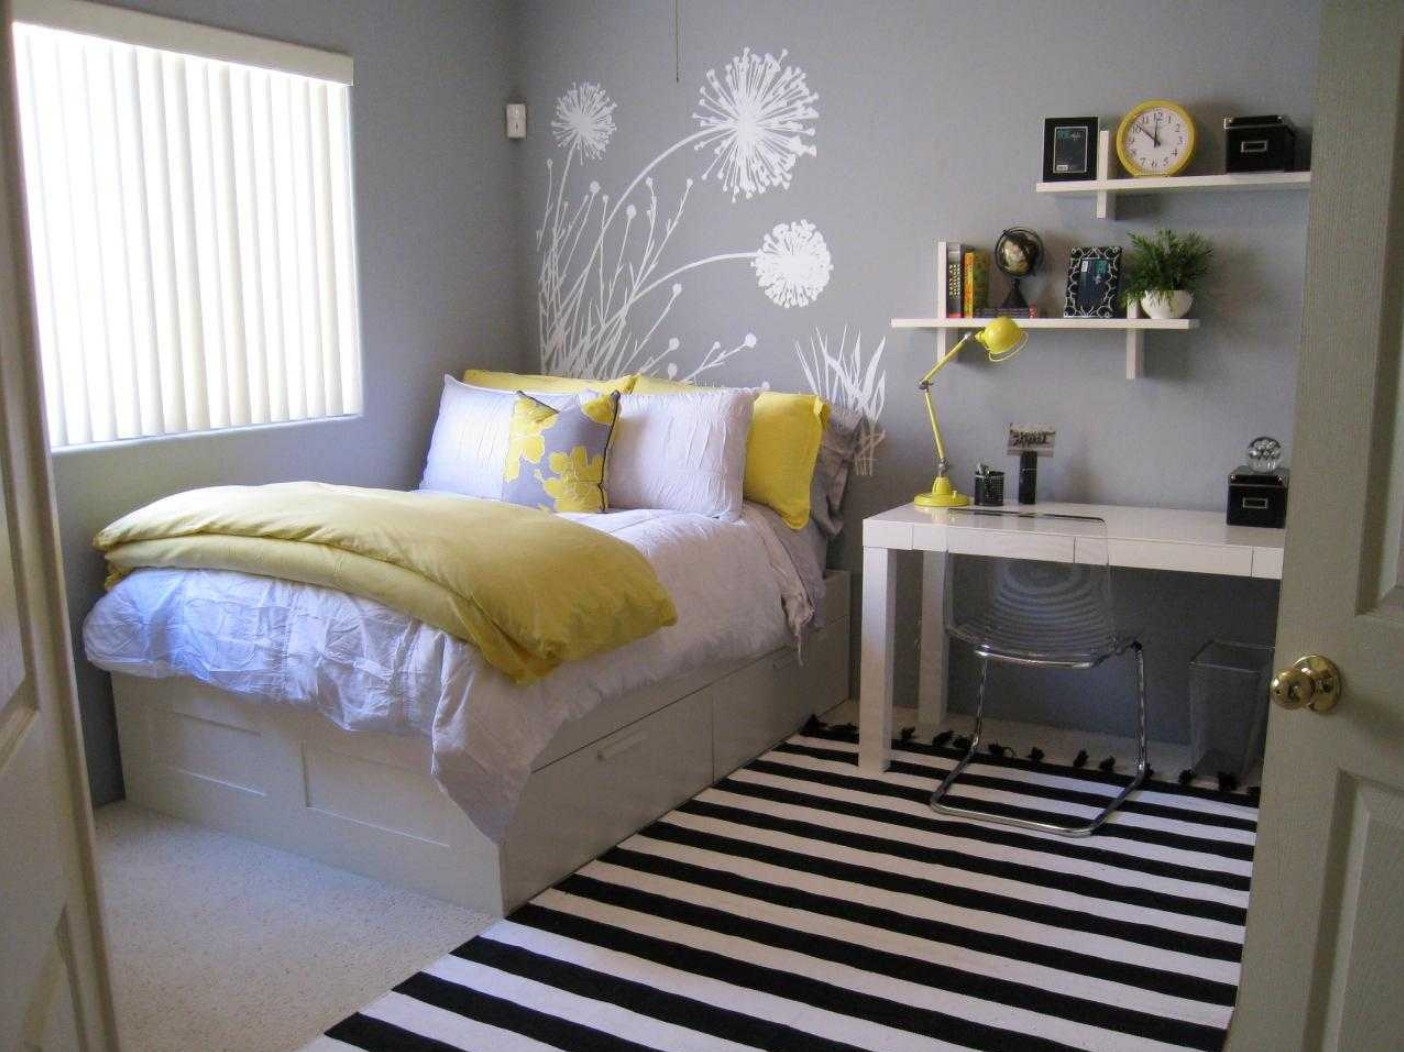 Gray room with yellow and a dandelion drawn on the wall